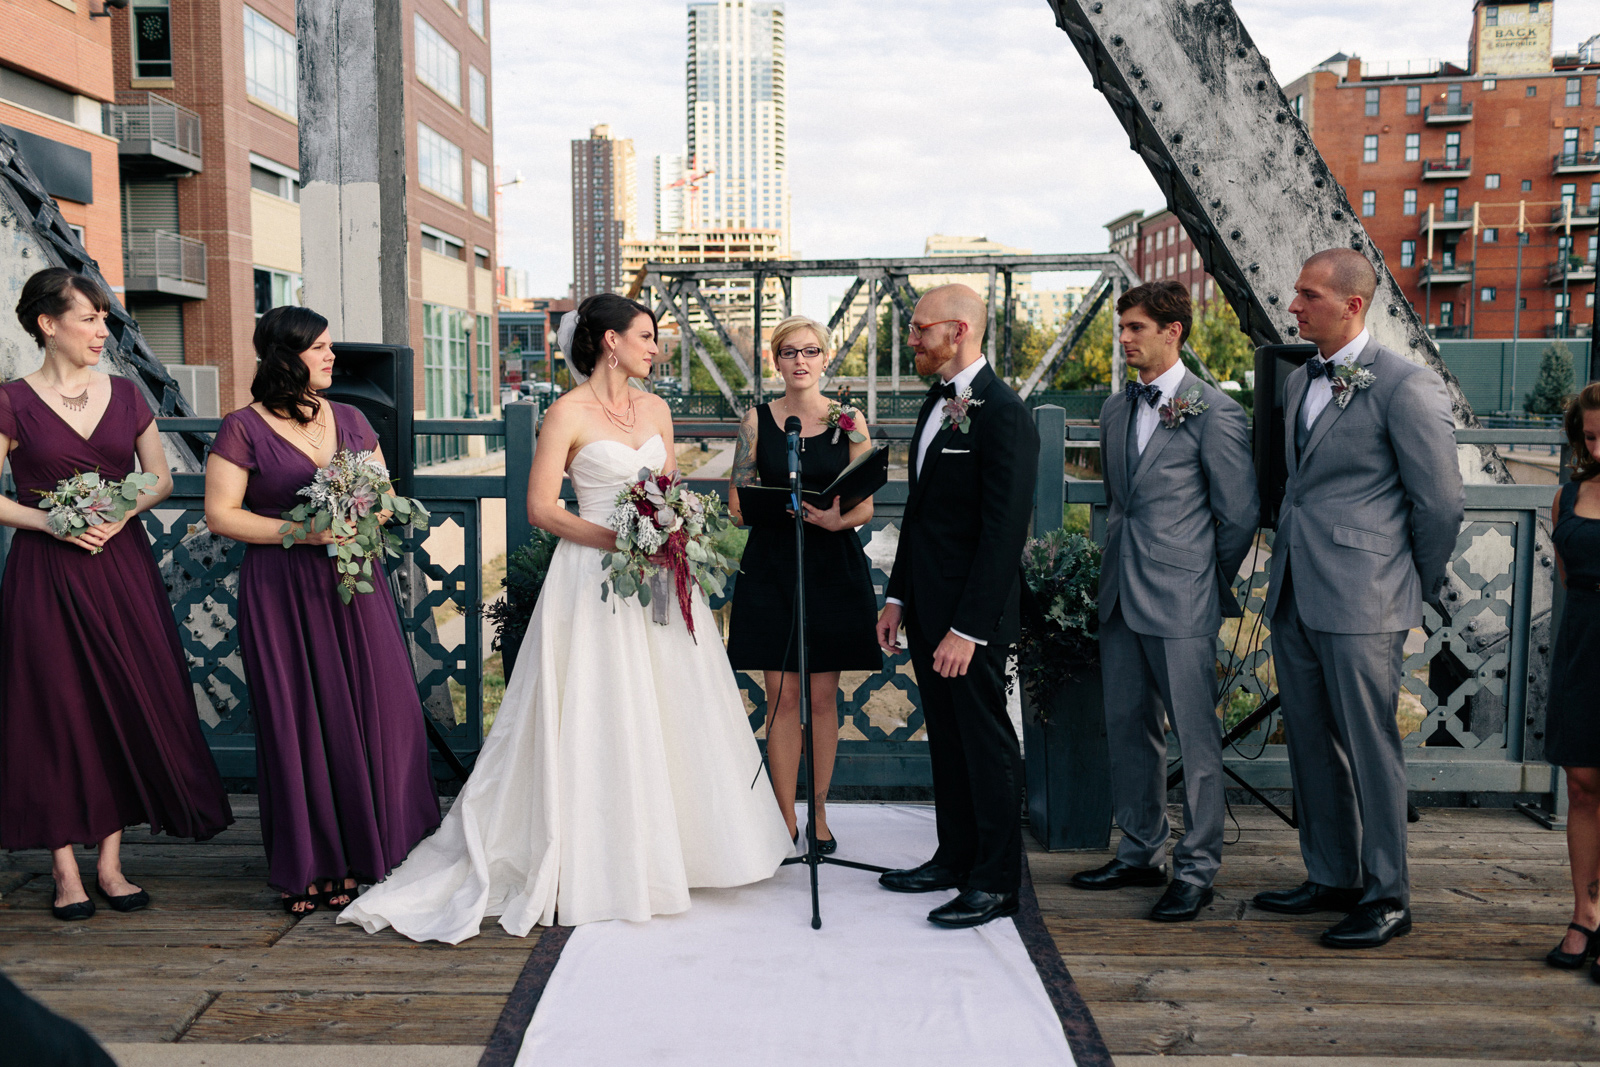 Coo-Hills-Wedding-Photographer-Downtown-Denver-Rebecc-and-Aaron-31.jpg